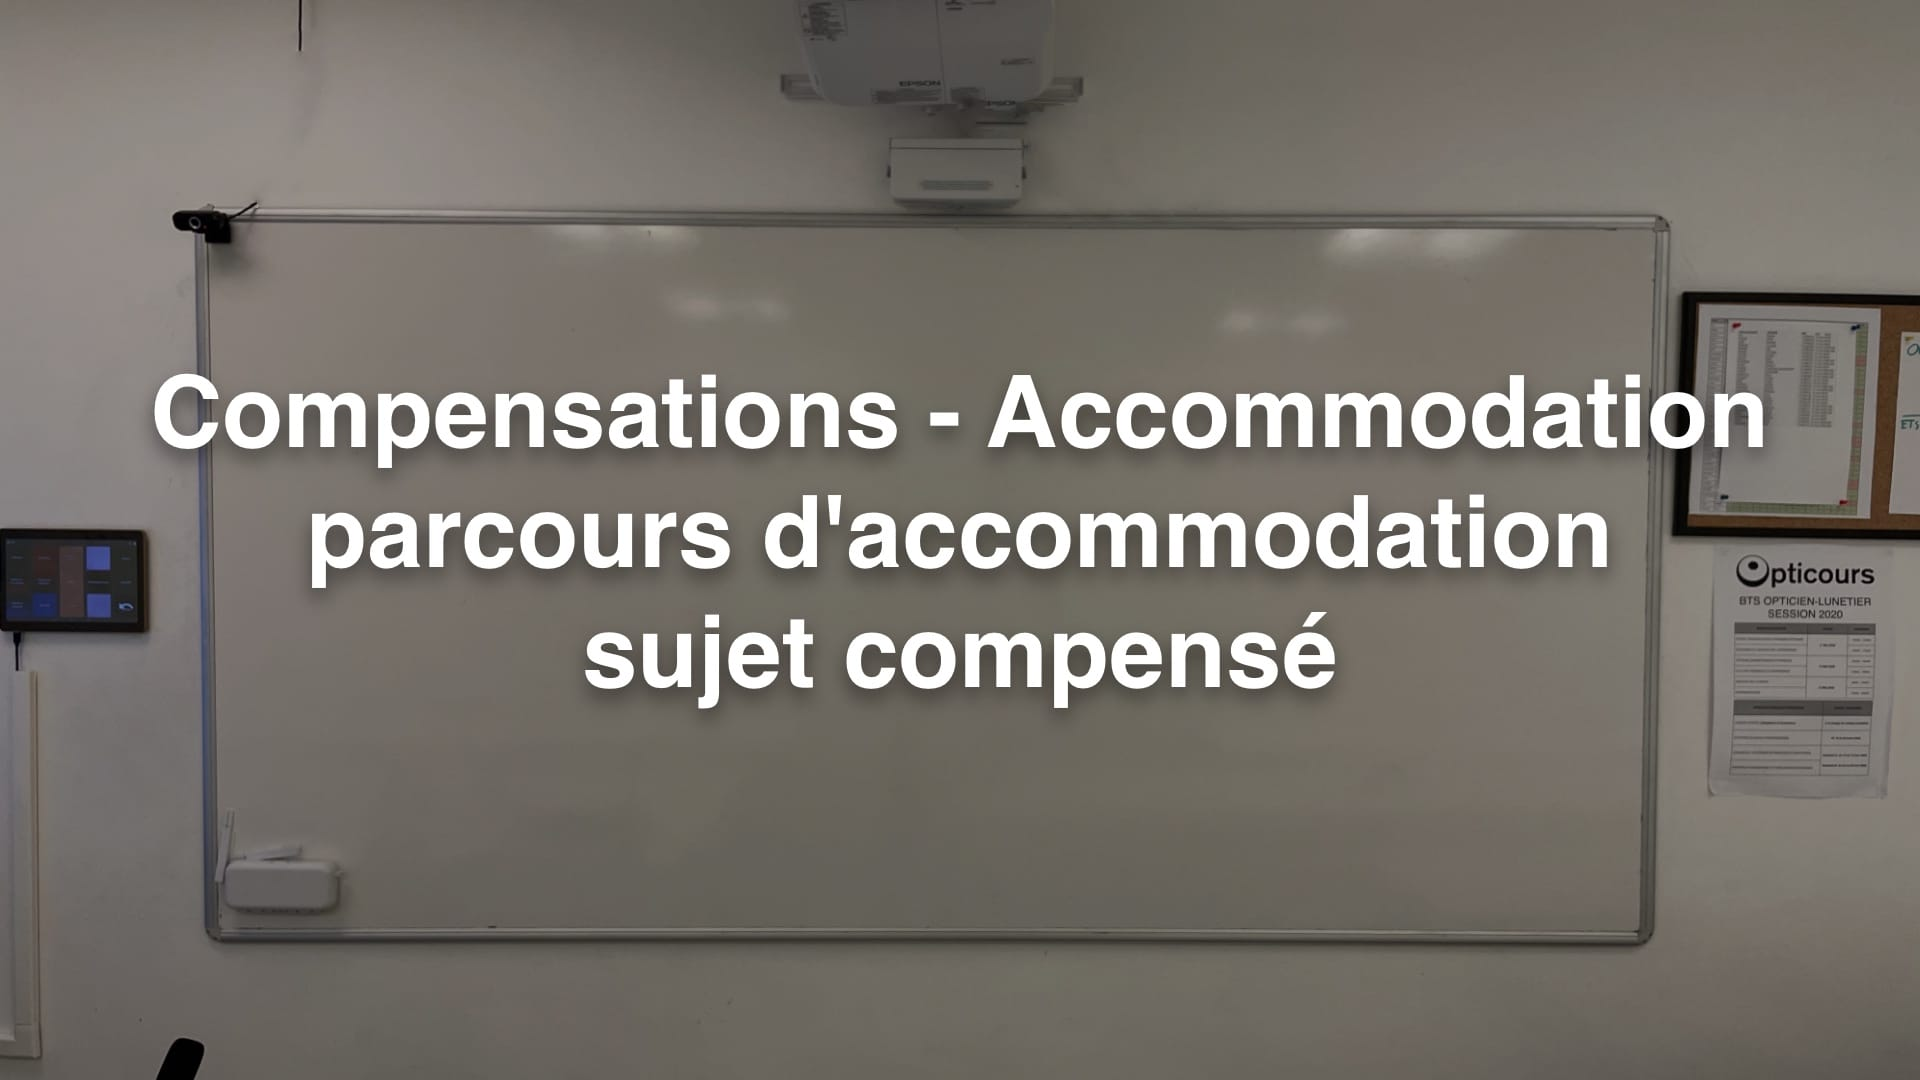 Cours BTS OL Accommodation